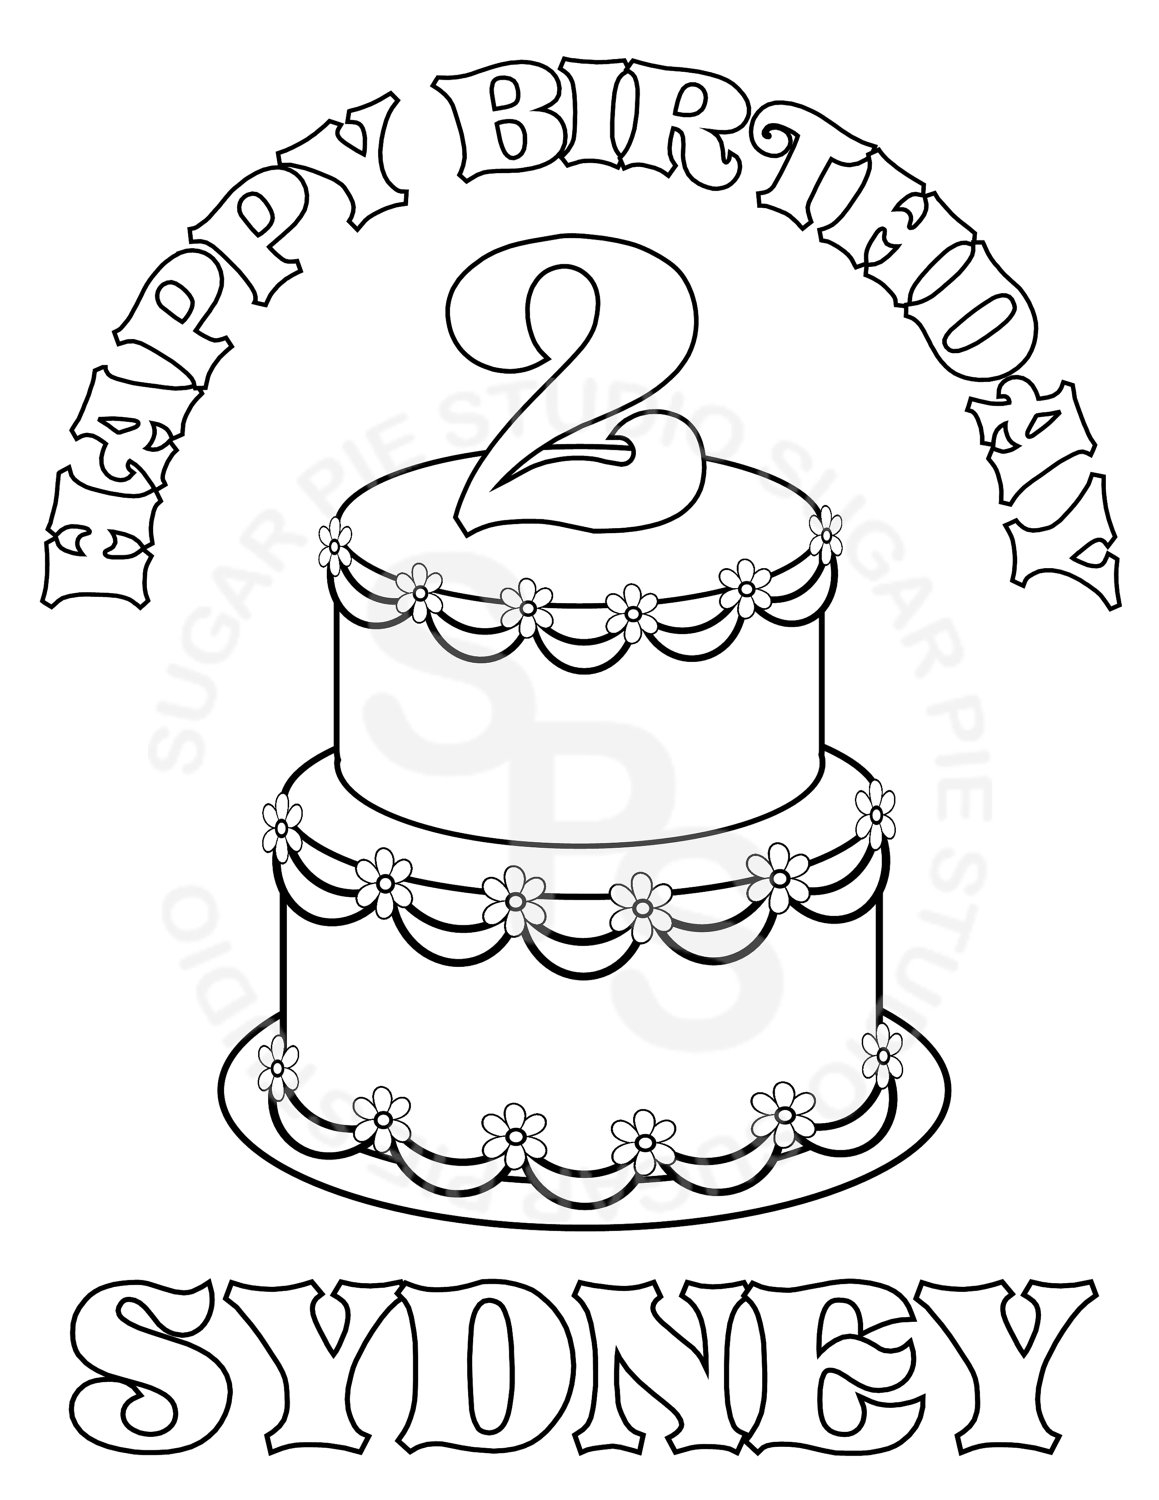 personalized happy birthday coloring pages ; personalized-happy-birthday-coloring-pages-3-b-custom-coloring-pages-at-book-line-inside-personalized